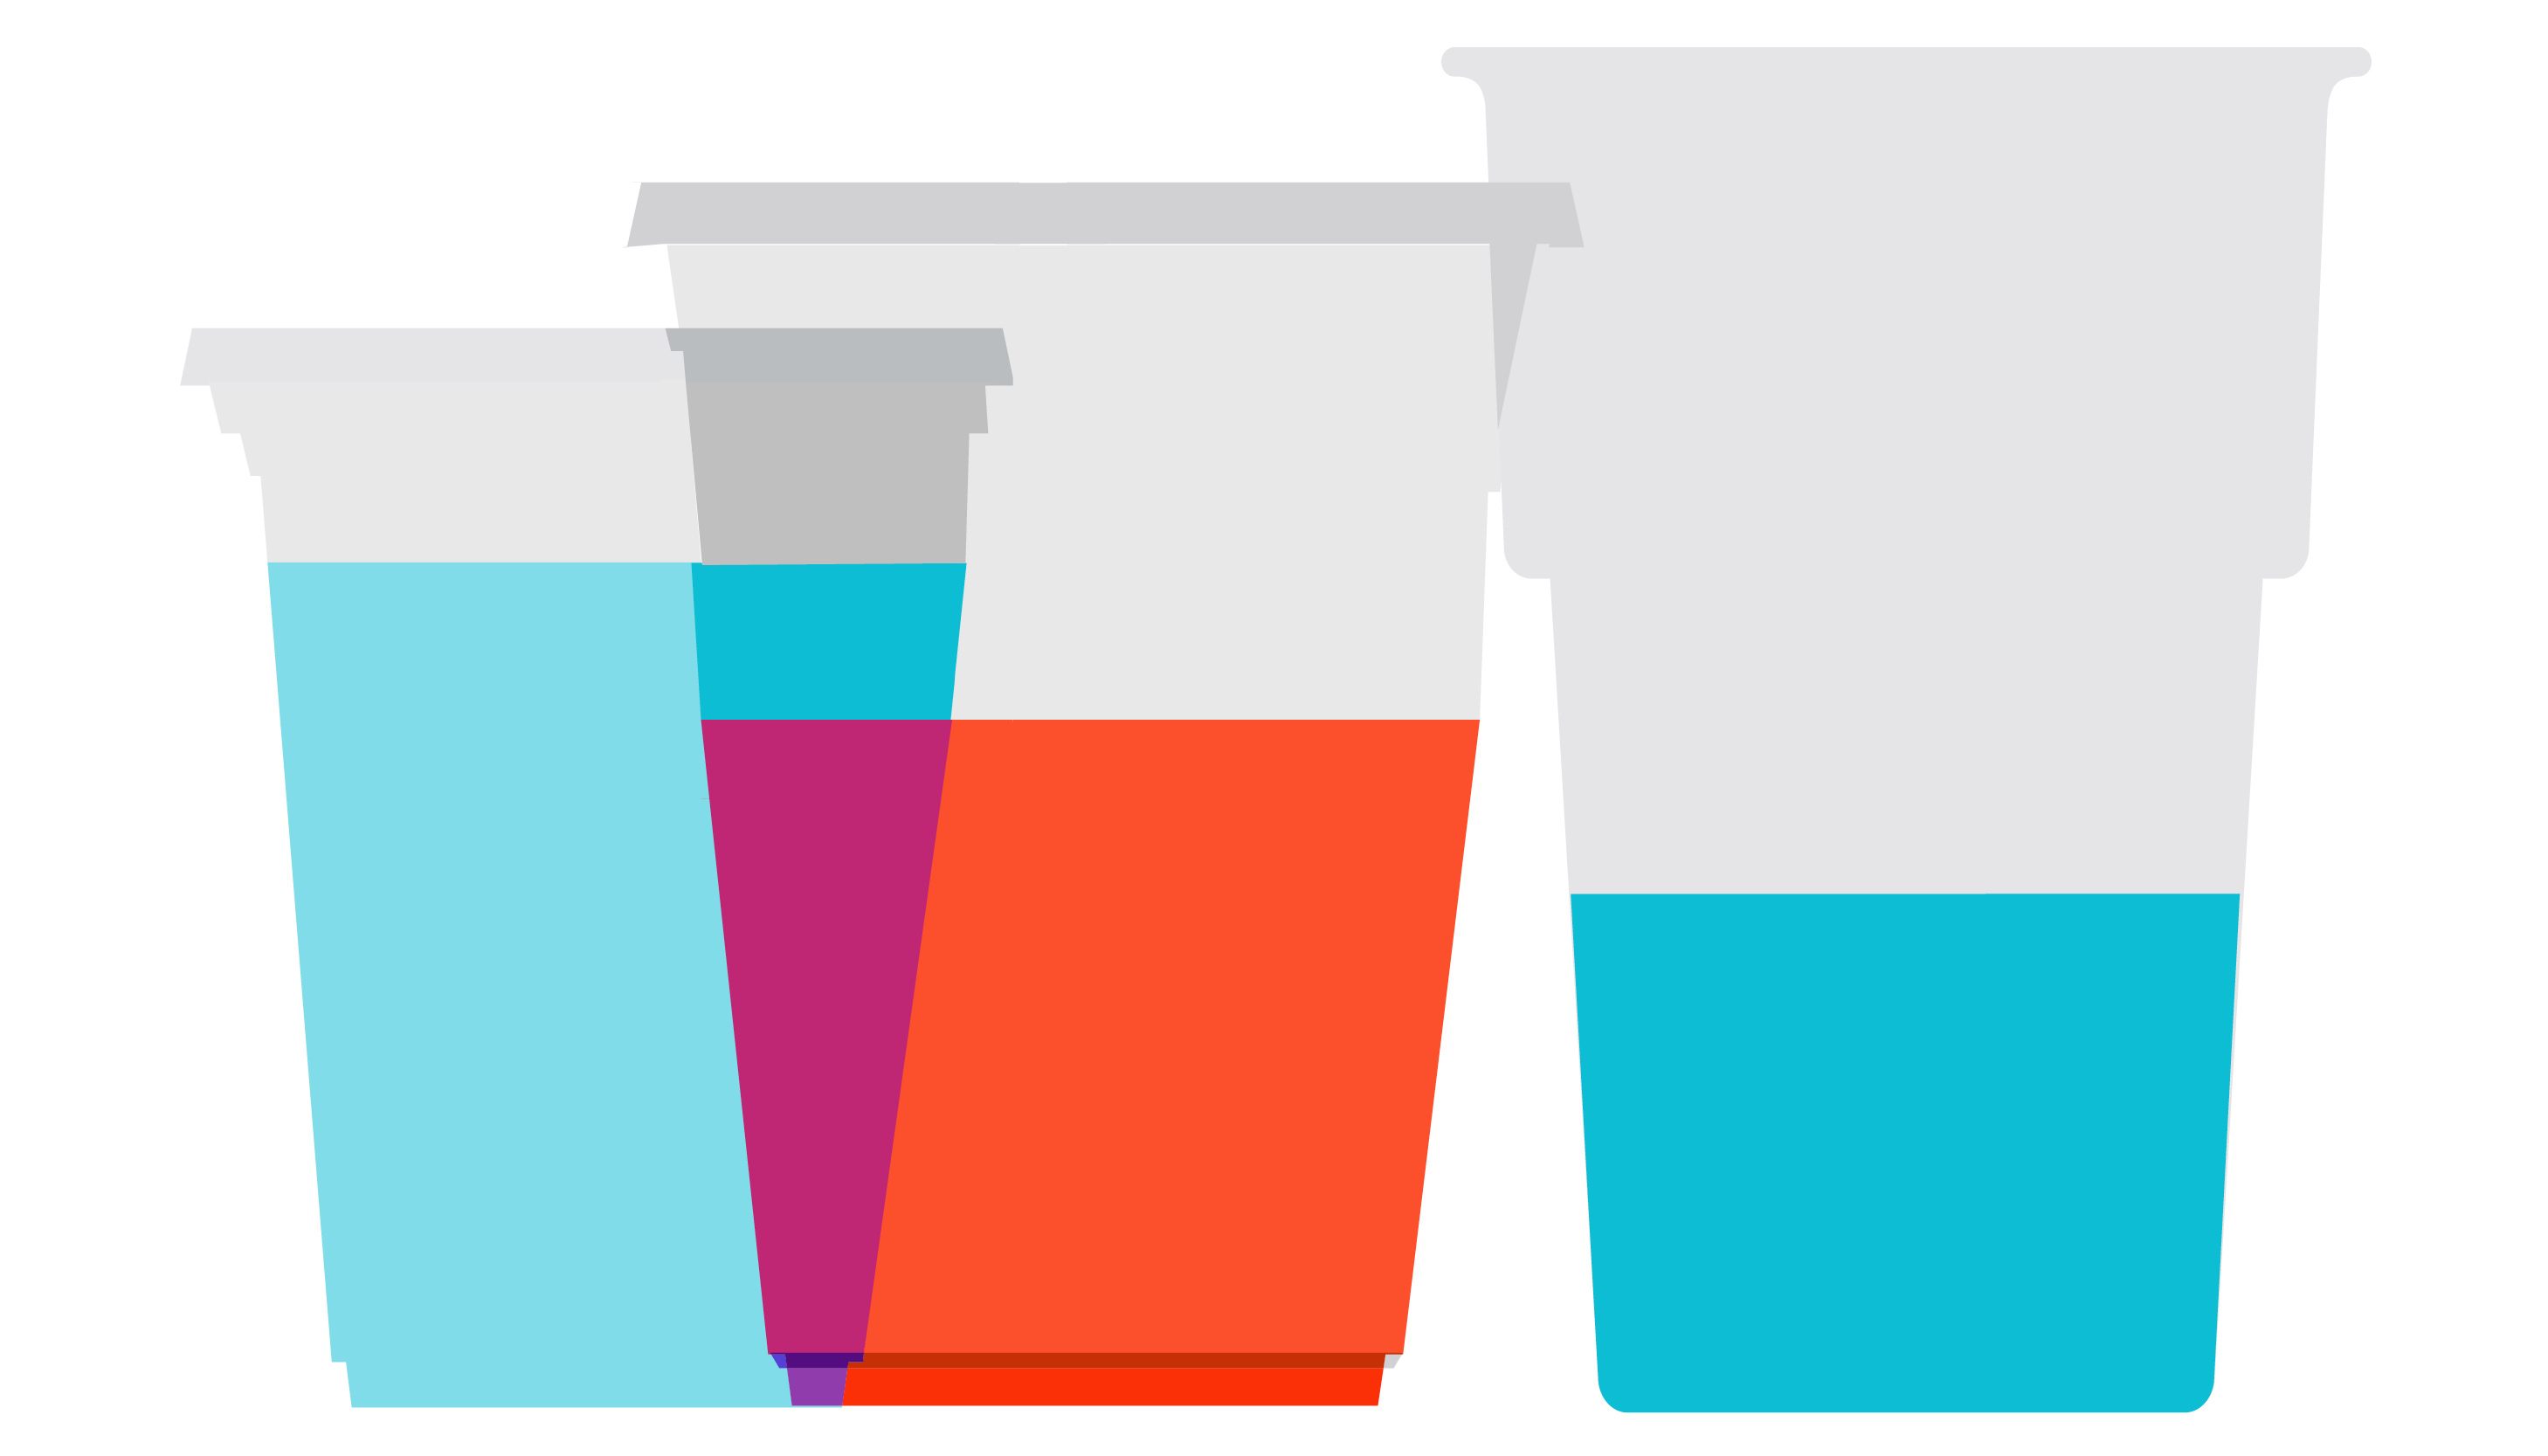 3 different sized solo cups with 5 fl oz of liquid each